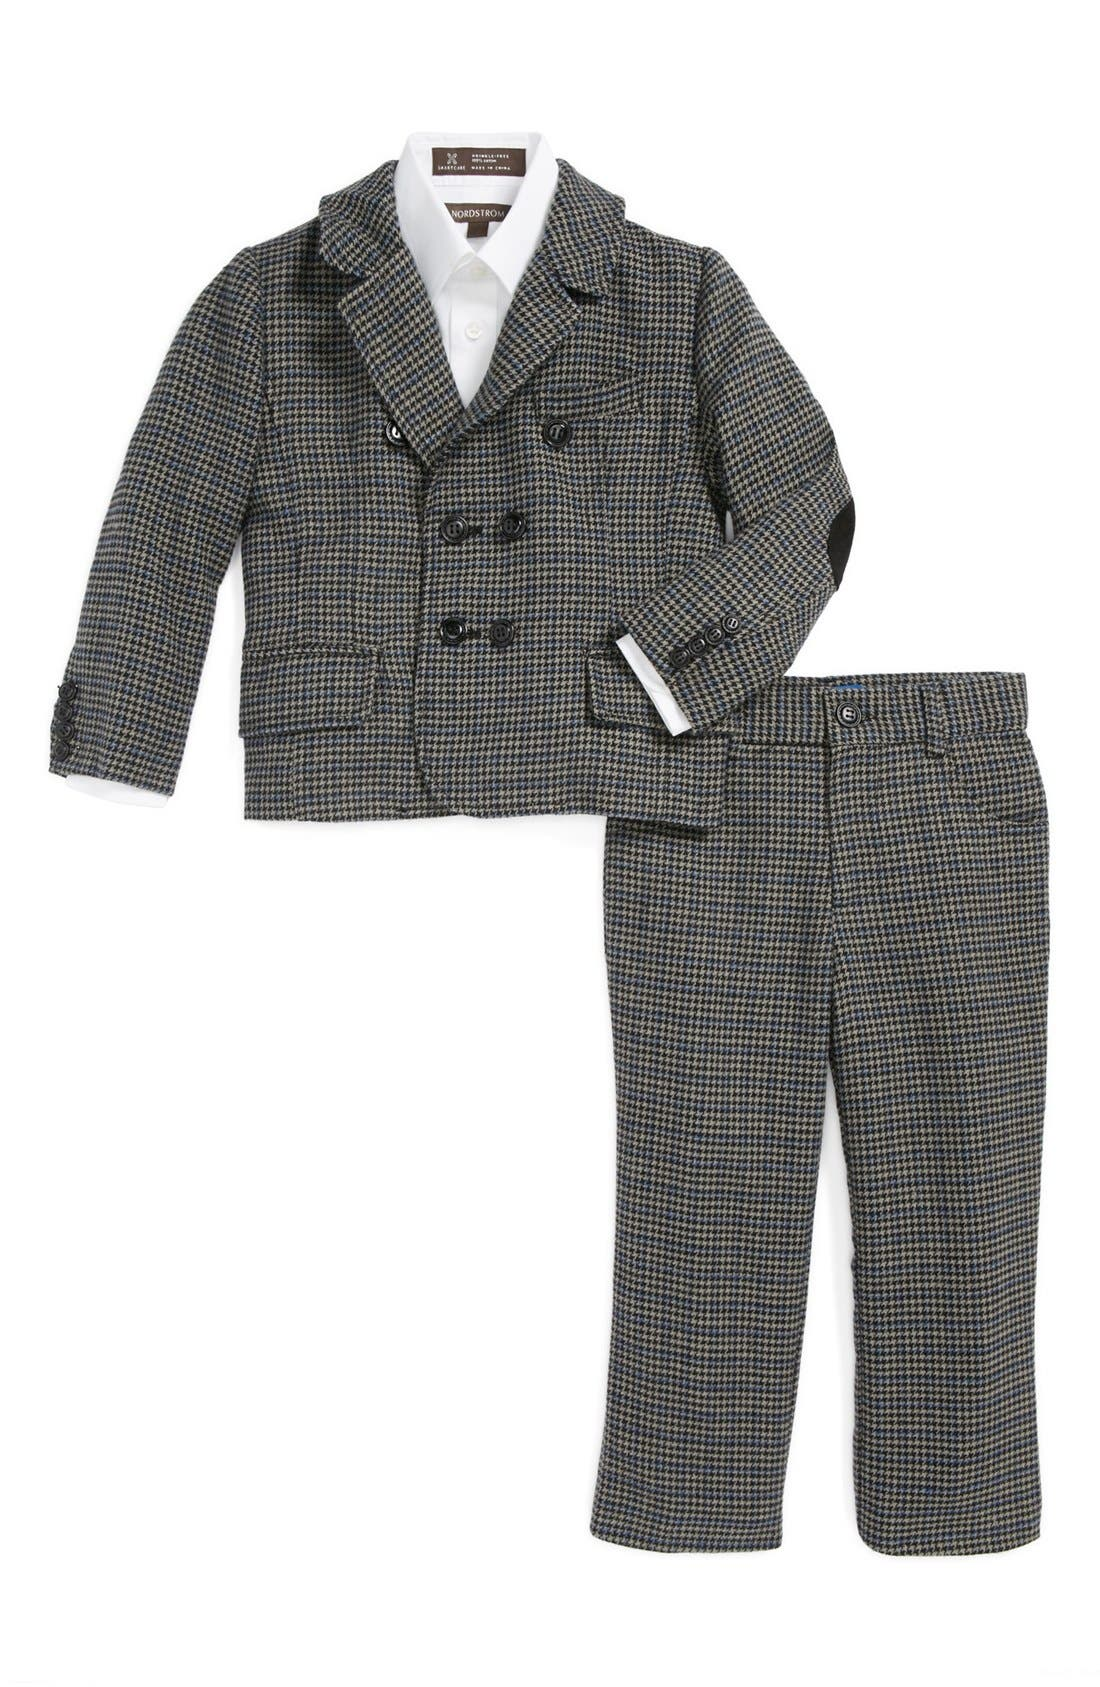 Alternate Image 1 Selected - Andy & Evan for little gentlemen Two-Piece Wool Suit (Toddler Boys)